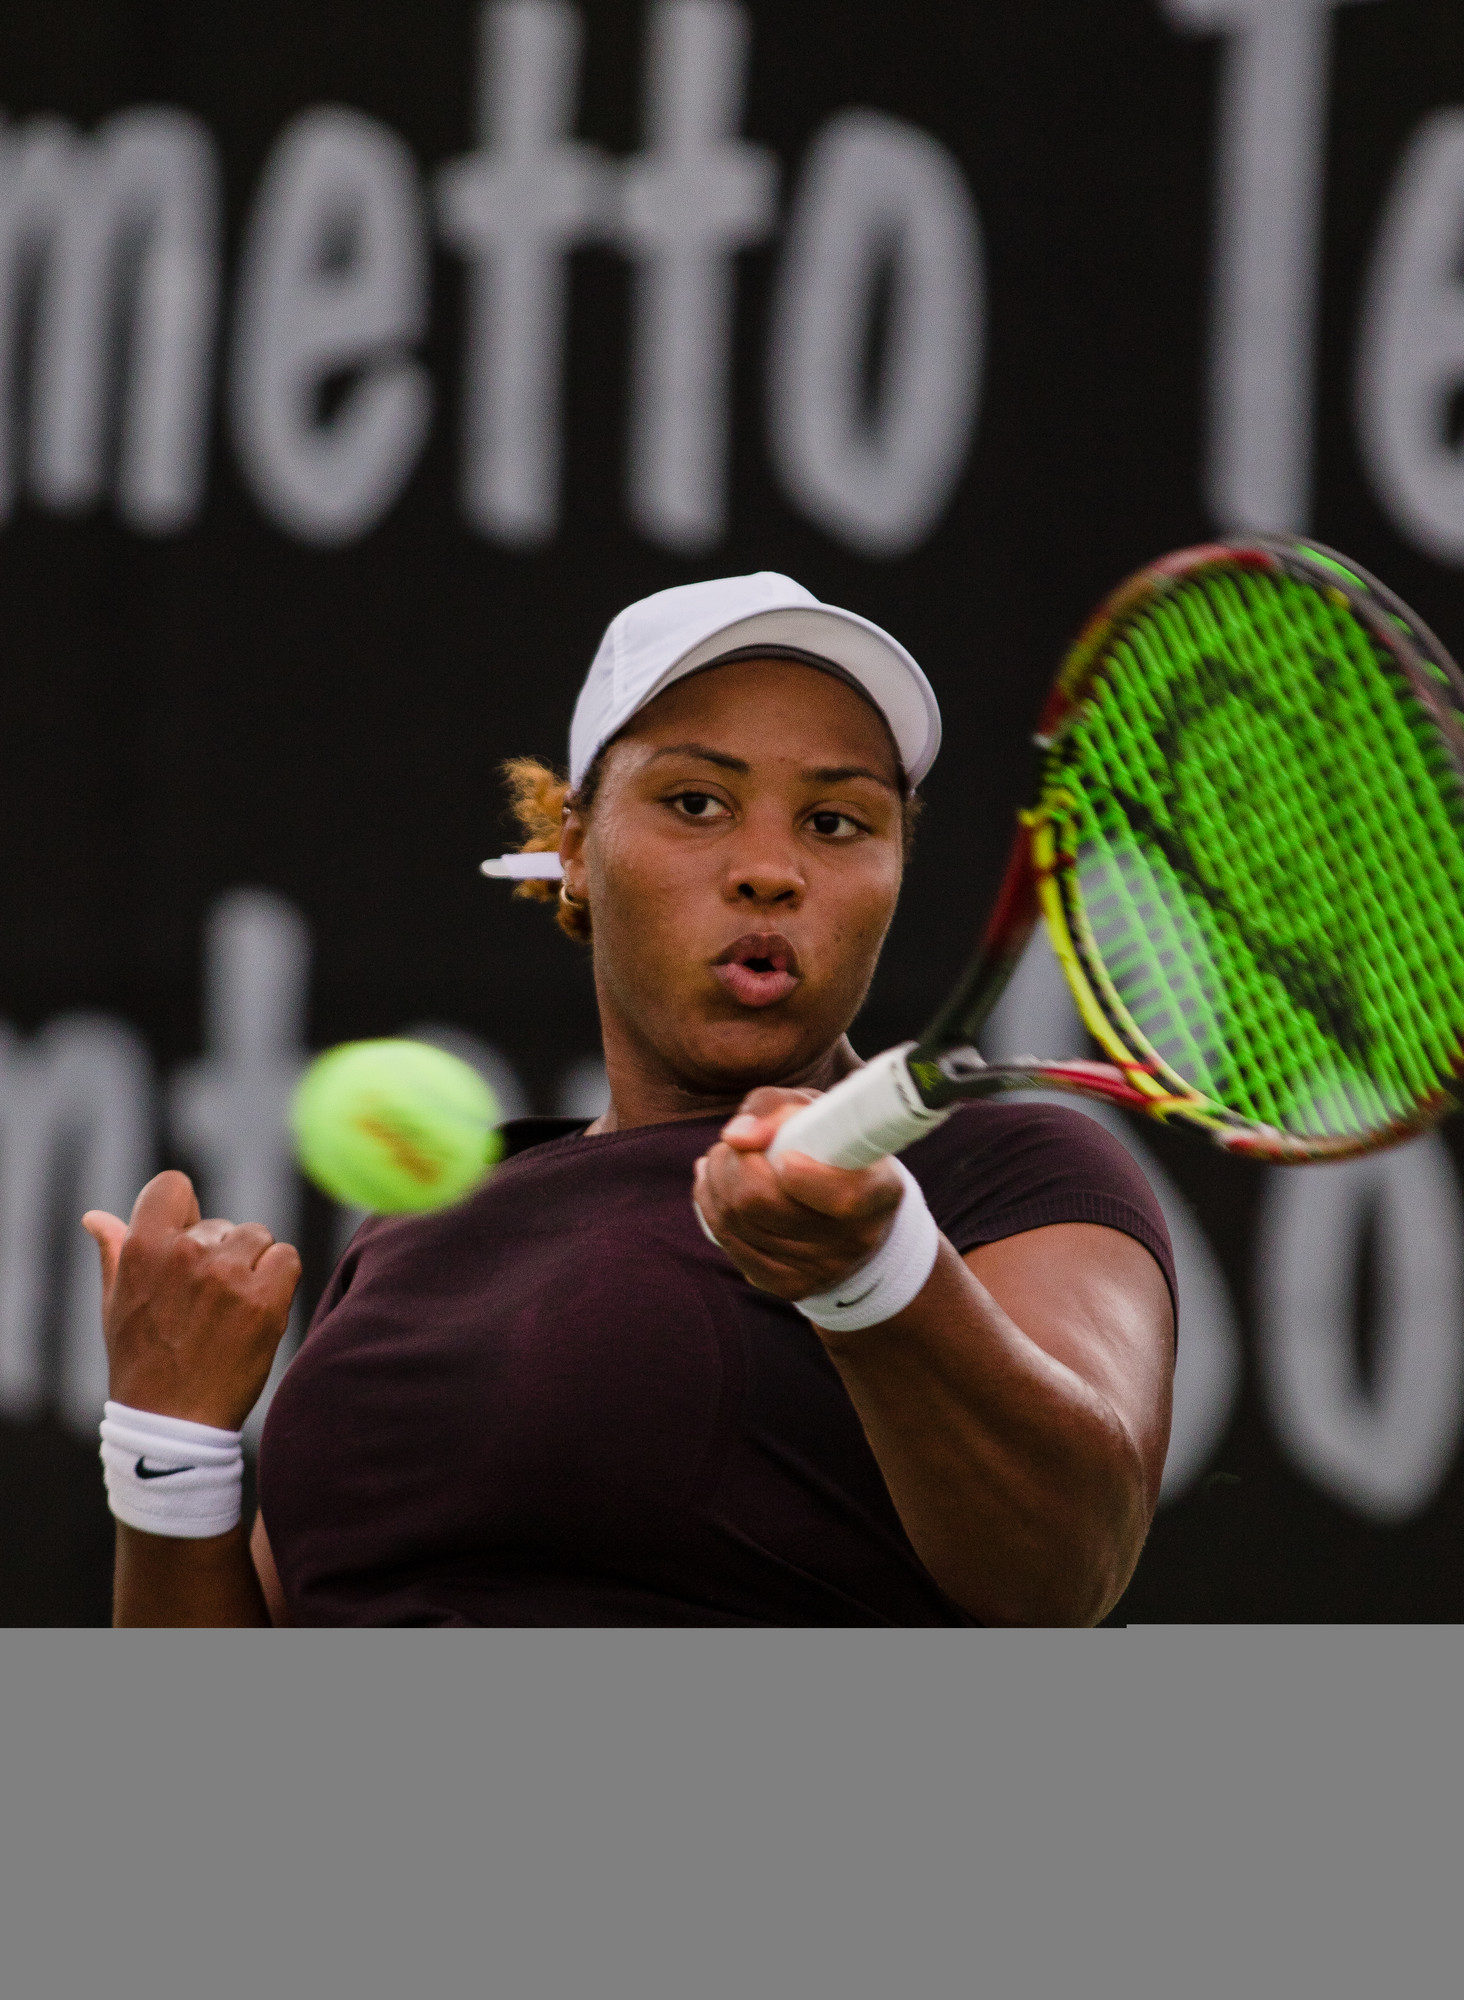 Top-seeded Taylor Townsend eyes a volley during her first-round match with Astra Sharma in the Palmetto Pro Open on Wednesday at Palmetto Tennis Center. Townsend survived a tough match, winning 7-5, 7-6(7) to advance.